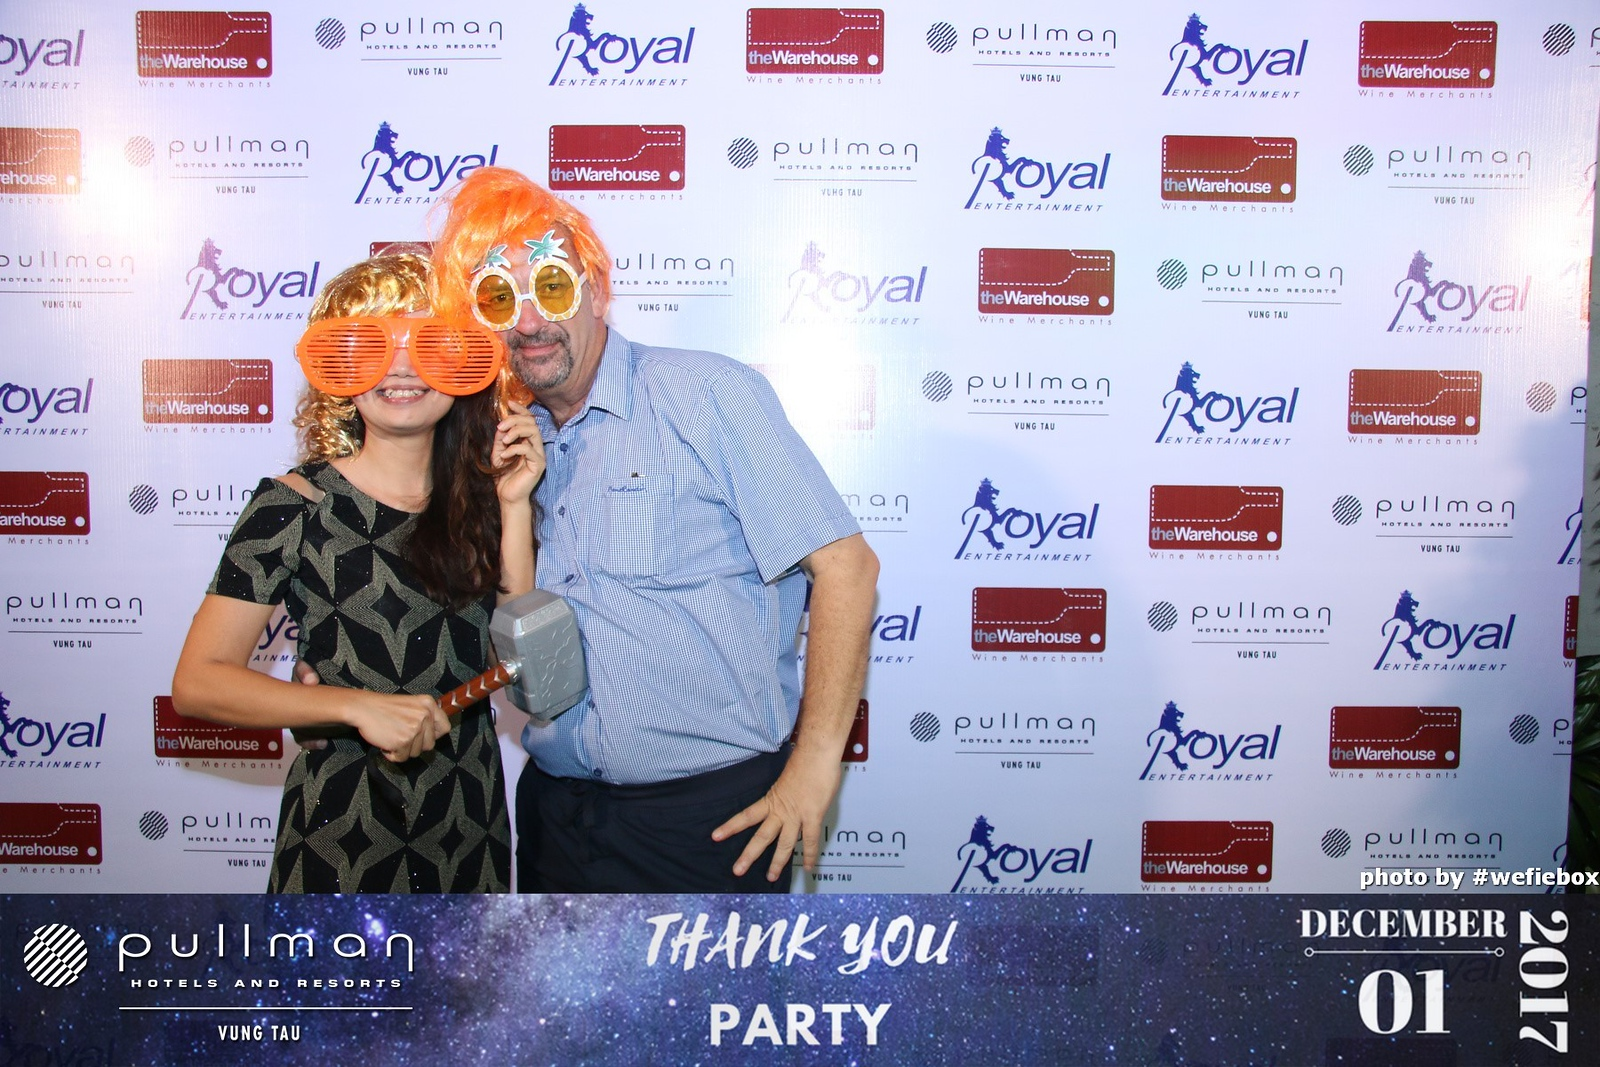 Pullman-Vung-Tau-Thank-You-Party-2017-photobooth-instant-print-chup-anh-lay-lien-su-kien-tiec-cuoi-049